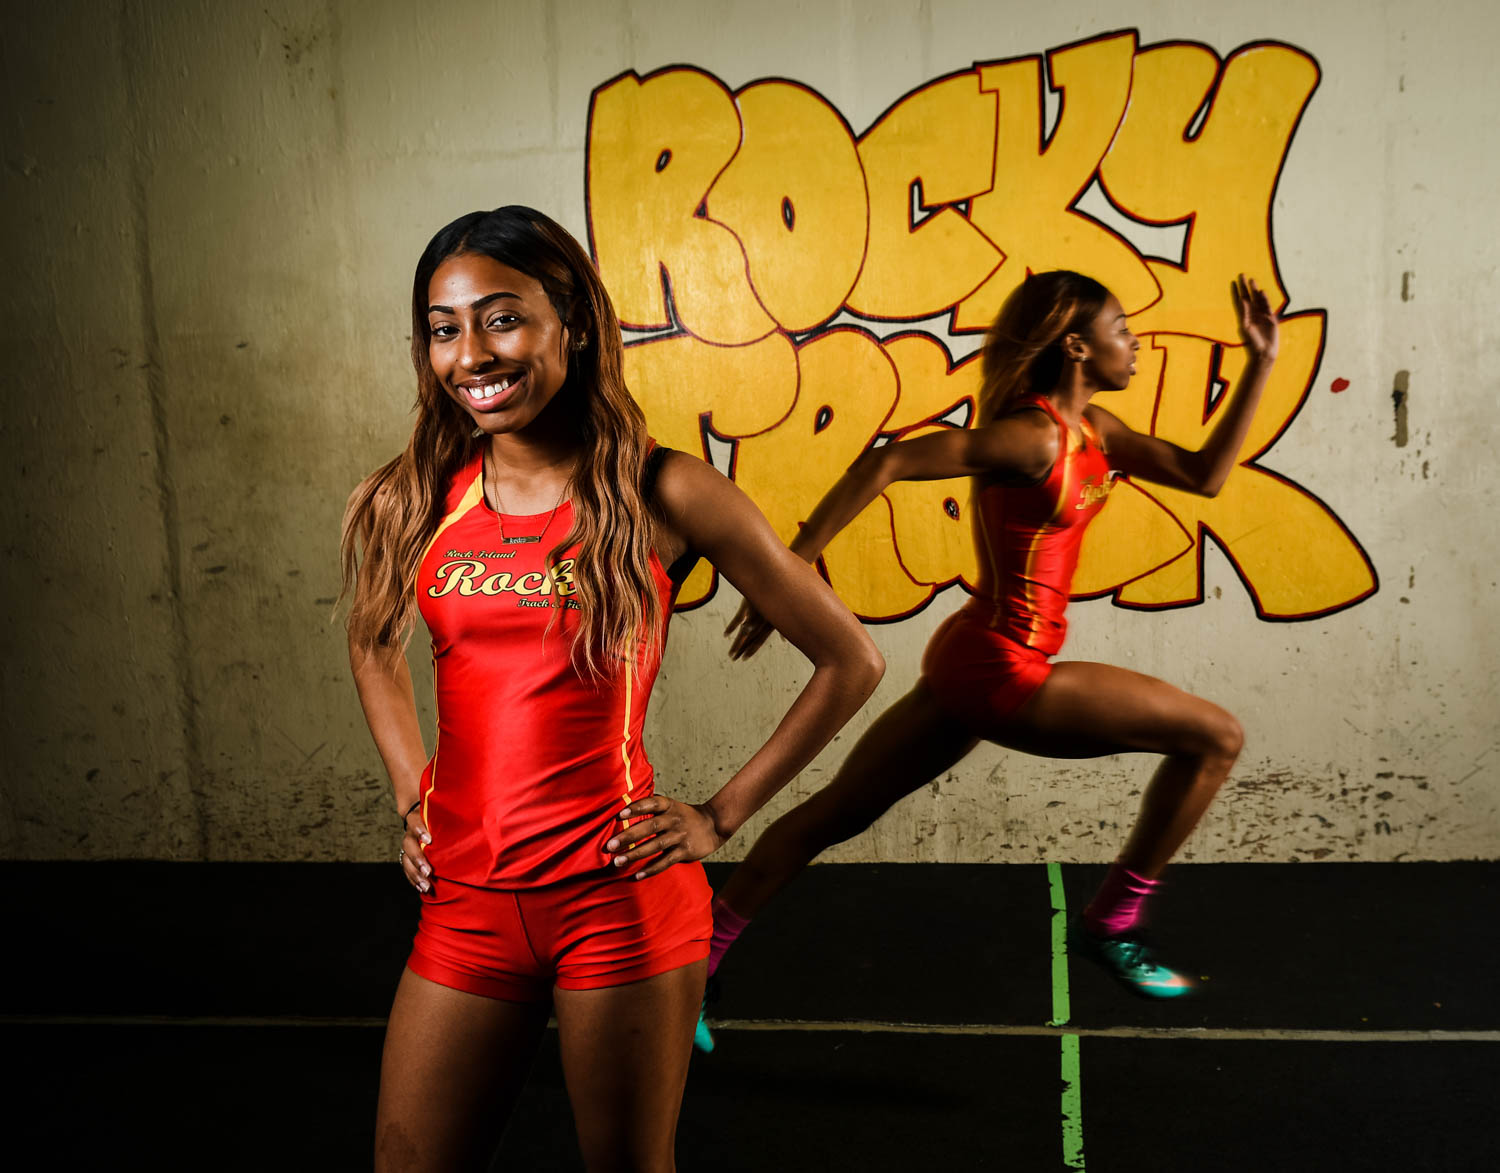 Rock Island sprinter Mykedra Craig is this week's Dispatch-Argus-QCOnline Metro Pacesetter. Craig won four events at the Gene Shipley Invitational on Saturday — the 100 and 200 individual events and also anchored the winning 4x100 and 4x200 relays. (Todd Mizener - Dispatch/Argus)